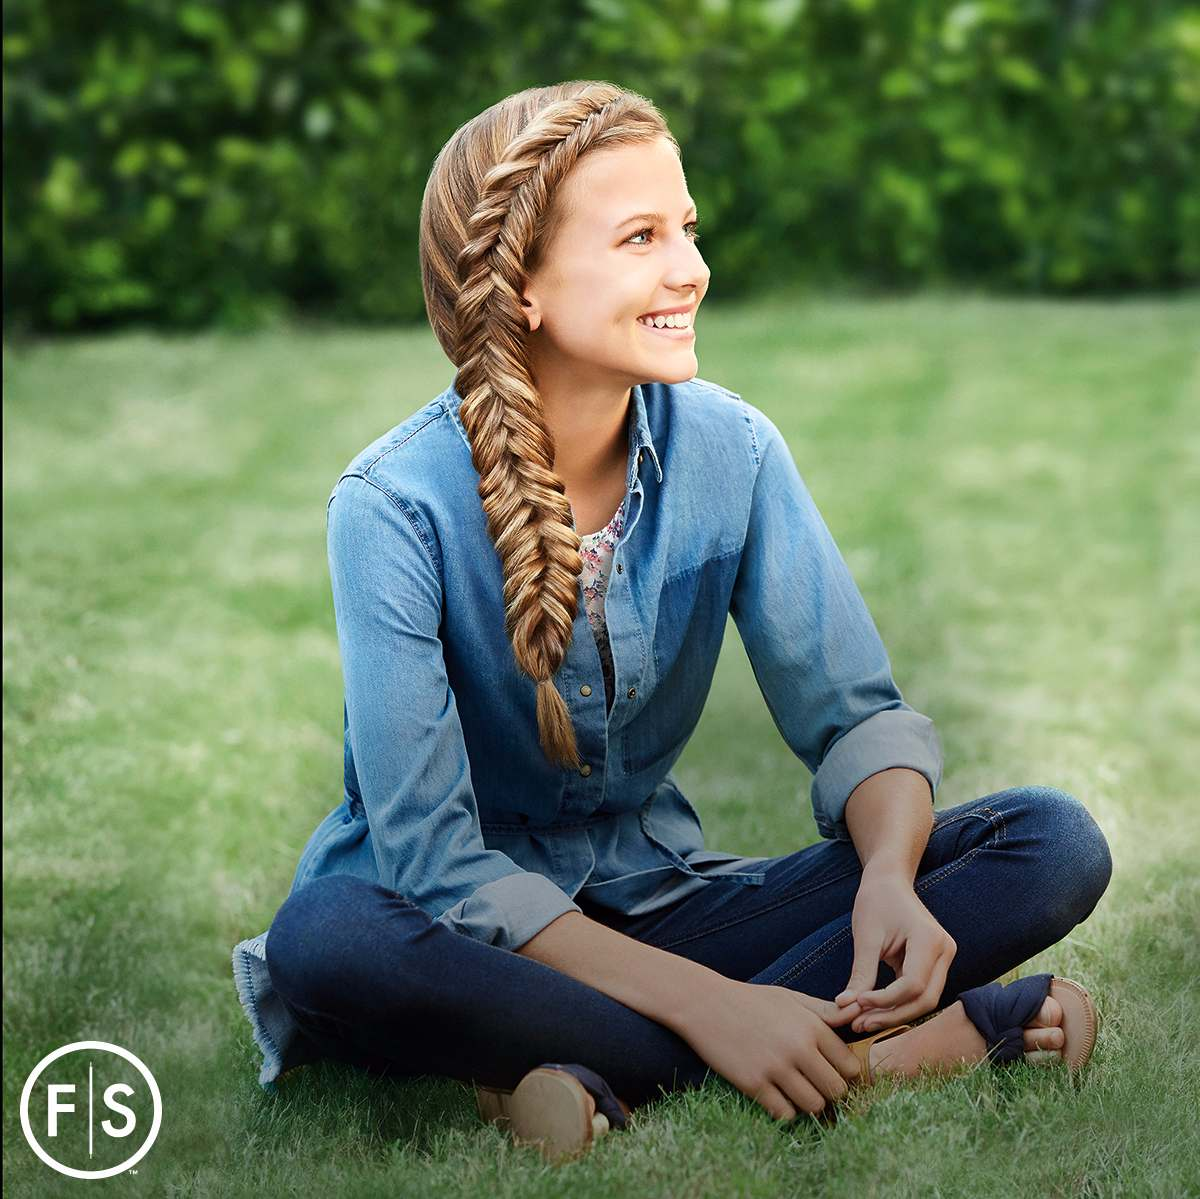 Fishtail_Braid_Hairstyle.jpg